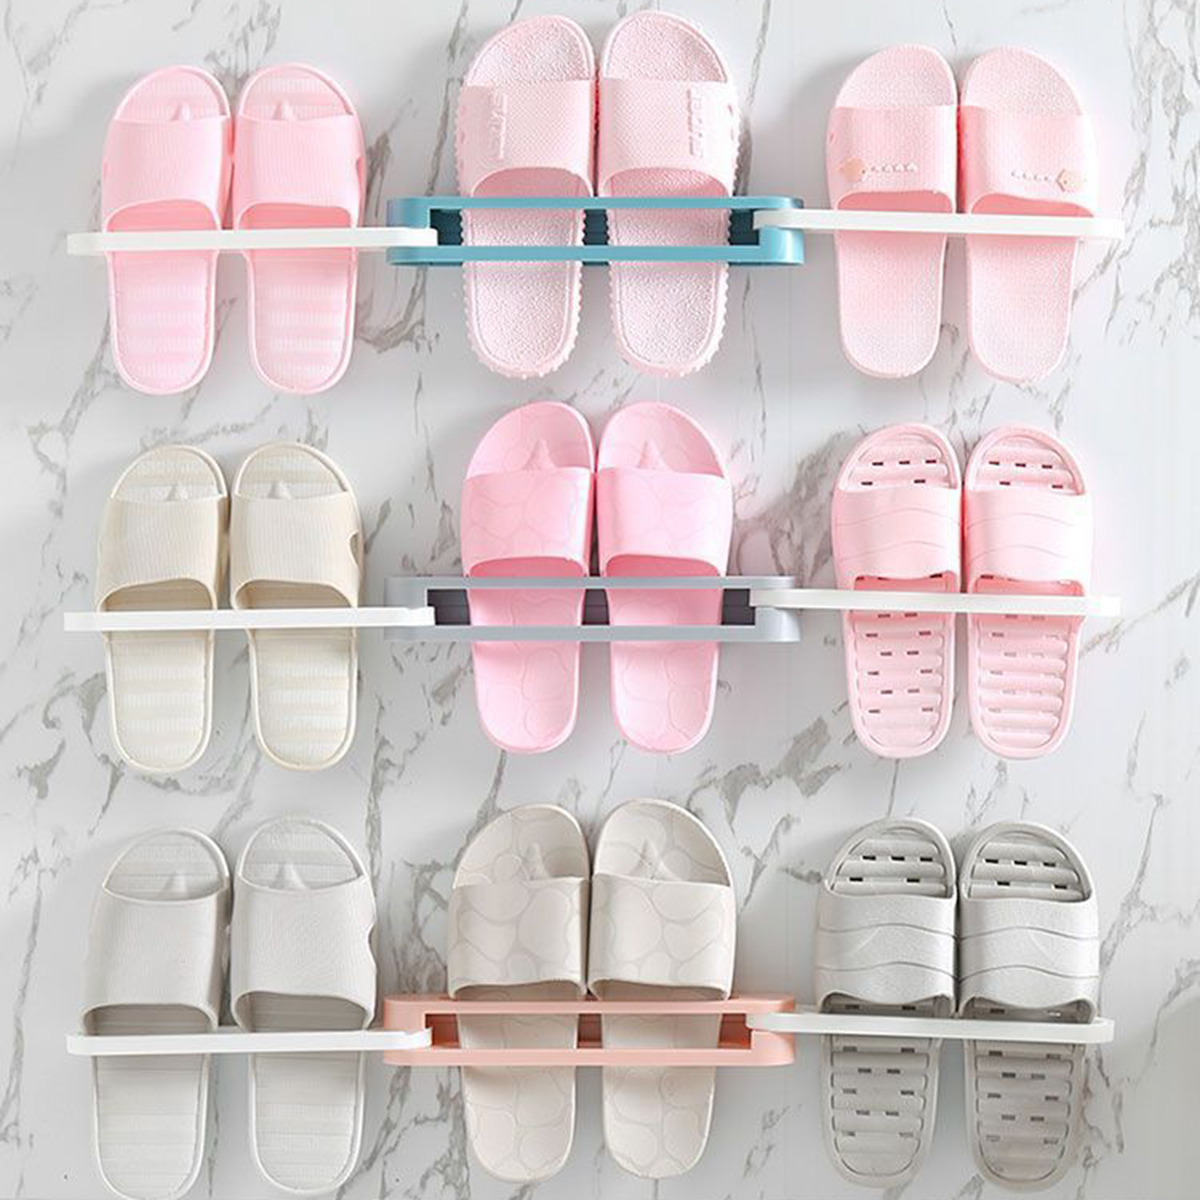 3 in 1 Home Wall-Mounted Shoes Shelf Racks Slippers Shoes Holder Shoes Storage Rack Shoes Organizer